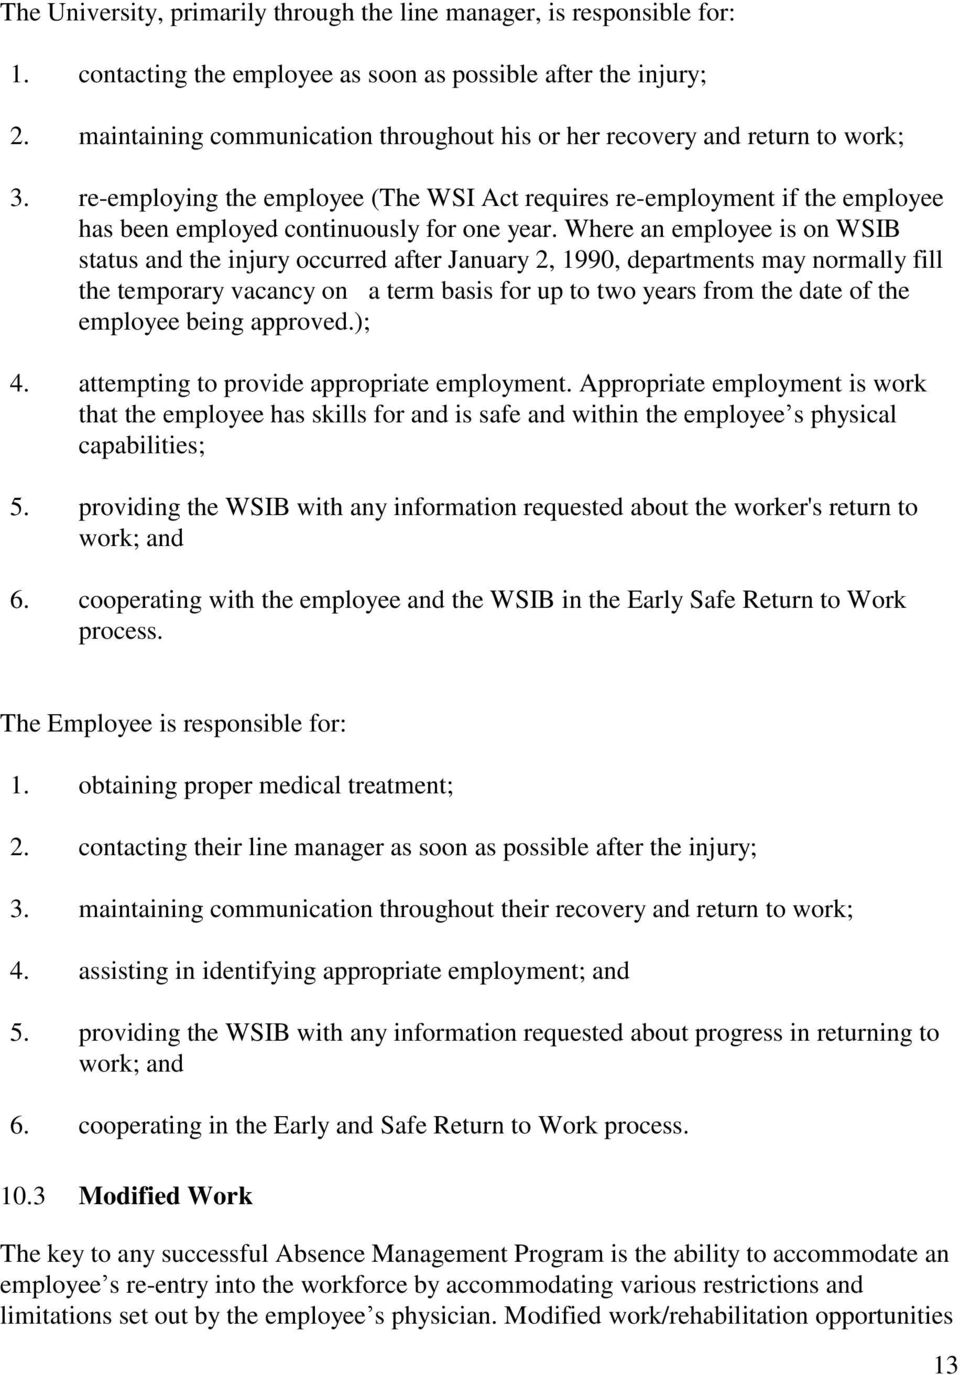 re-employing the employee (The WSI Act requires re-employment if the employee has been employed continuously for one year.